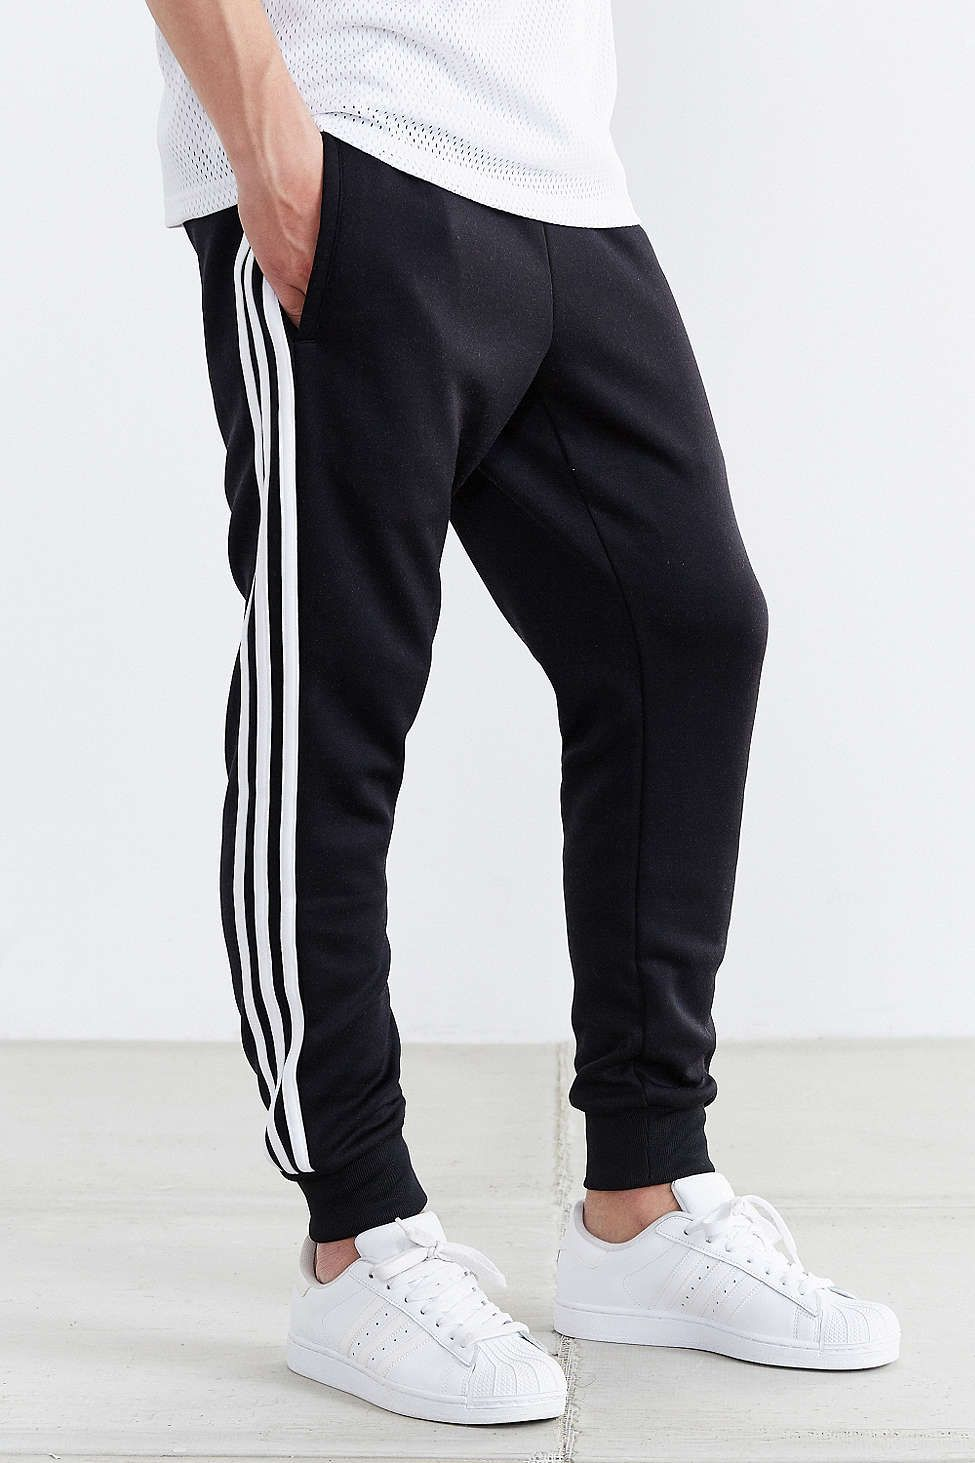 official photos 7e264 65cc0 adidas Originals Superstar Cuff Track Pant